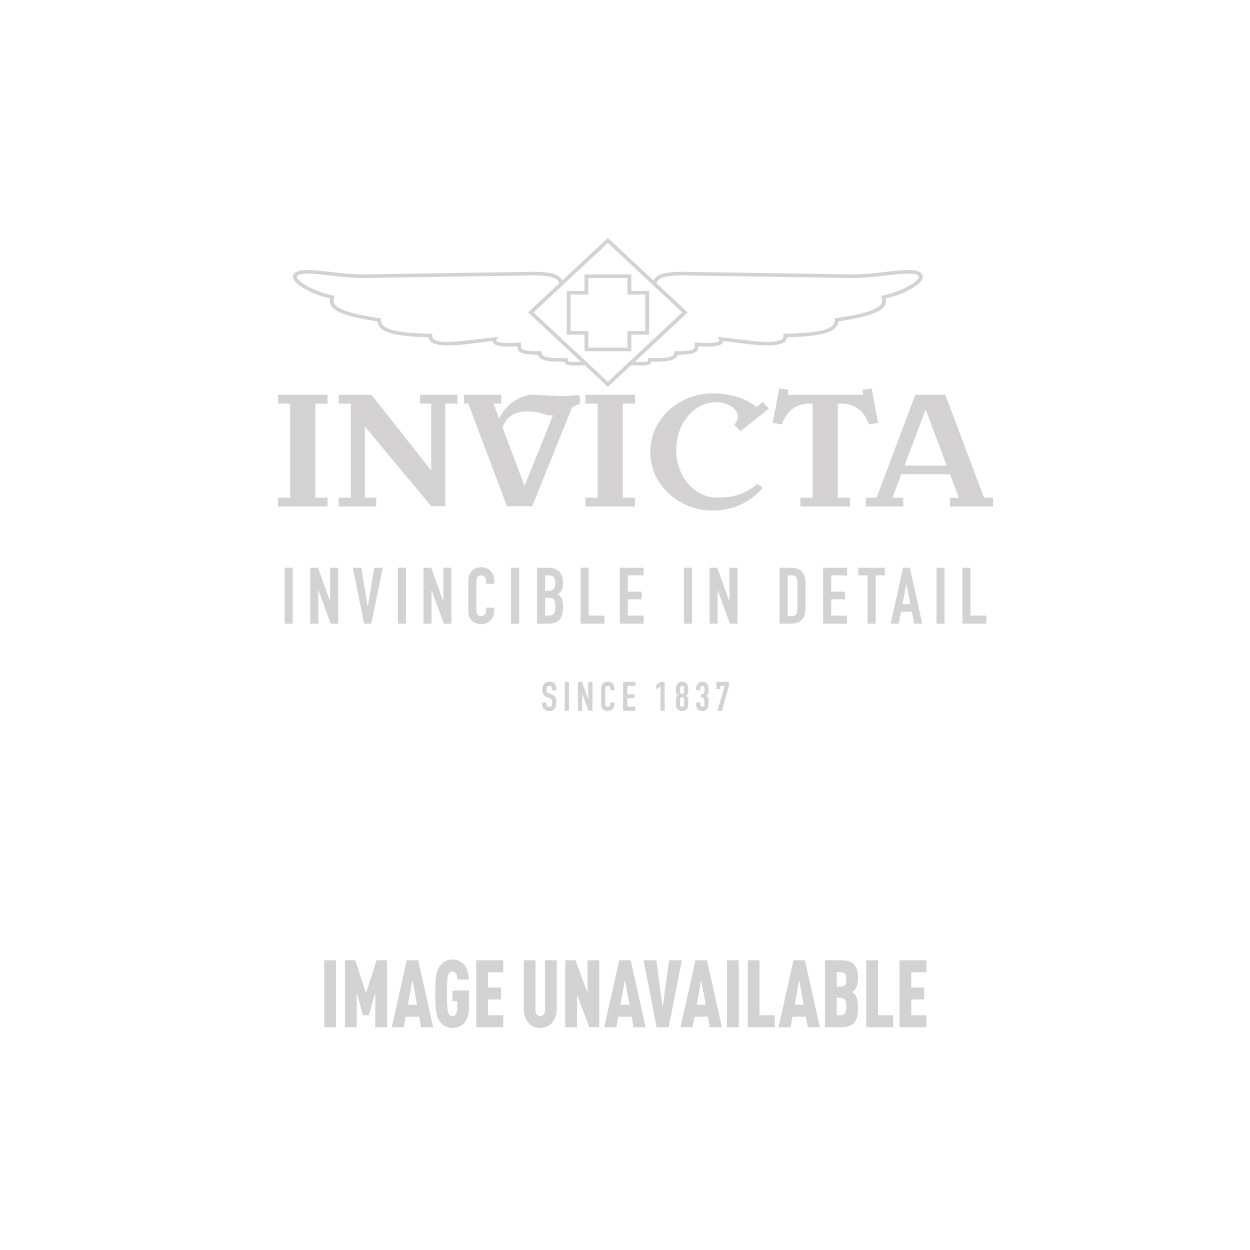 Invicta Angel Swiss Movement Quartz Watch - Stainless Steel case Stainless Steel band - Model 15867